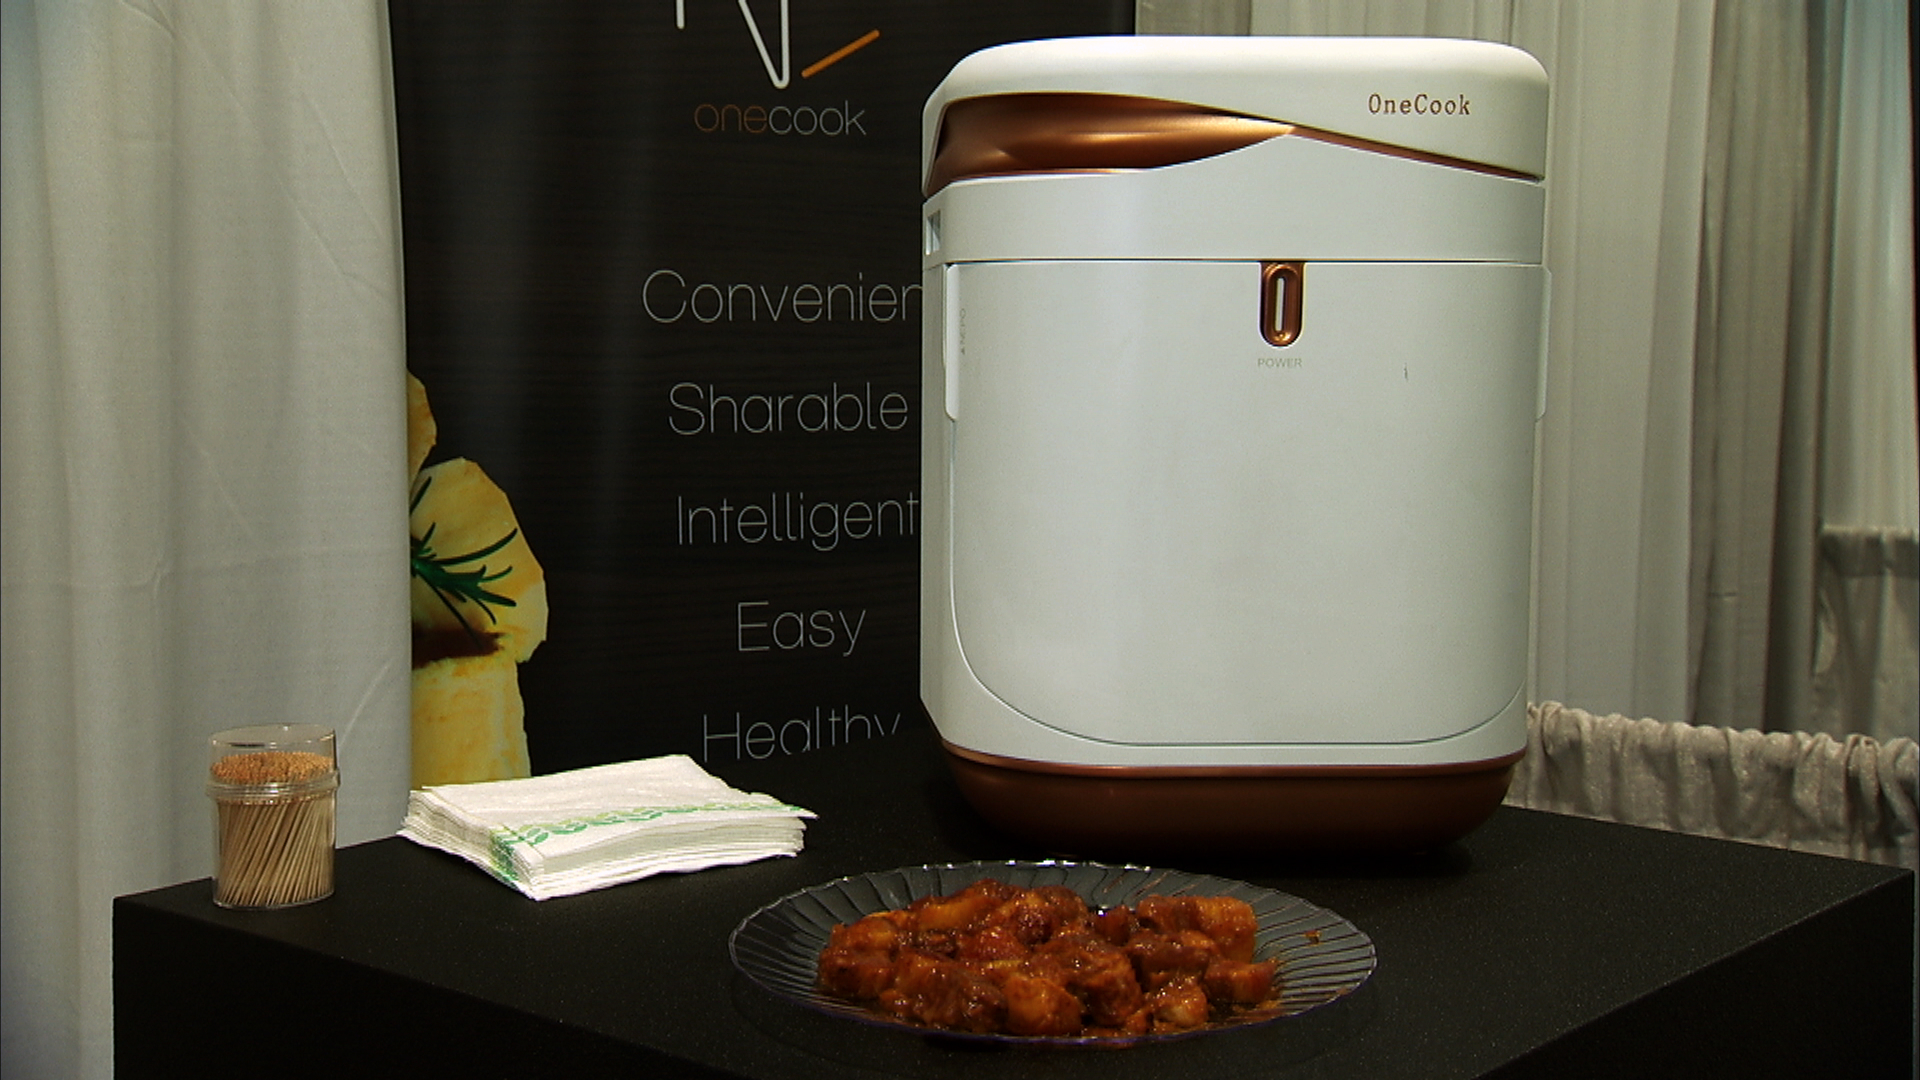 Video: Hate cooking? Let OneCook's smart device handle dinner